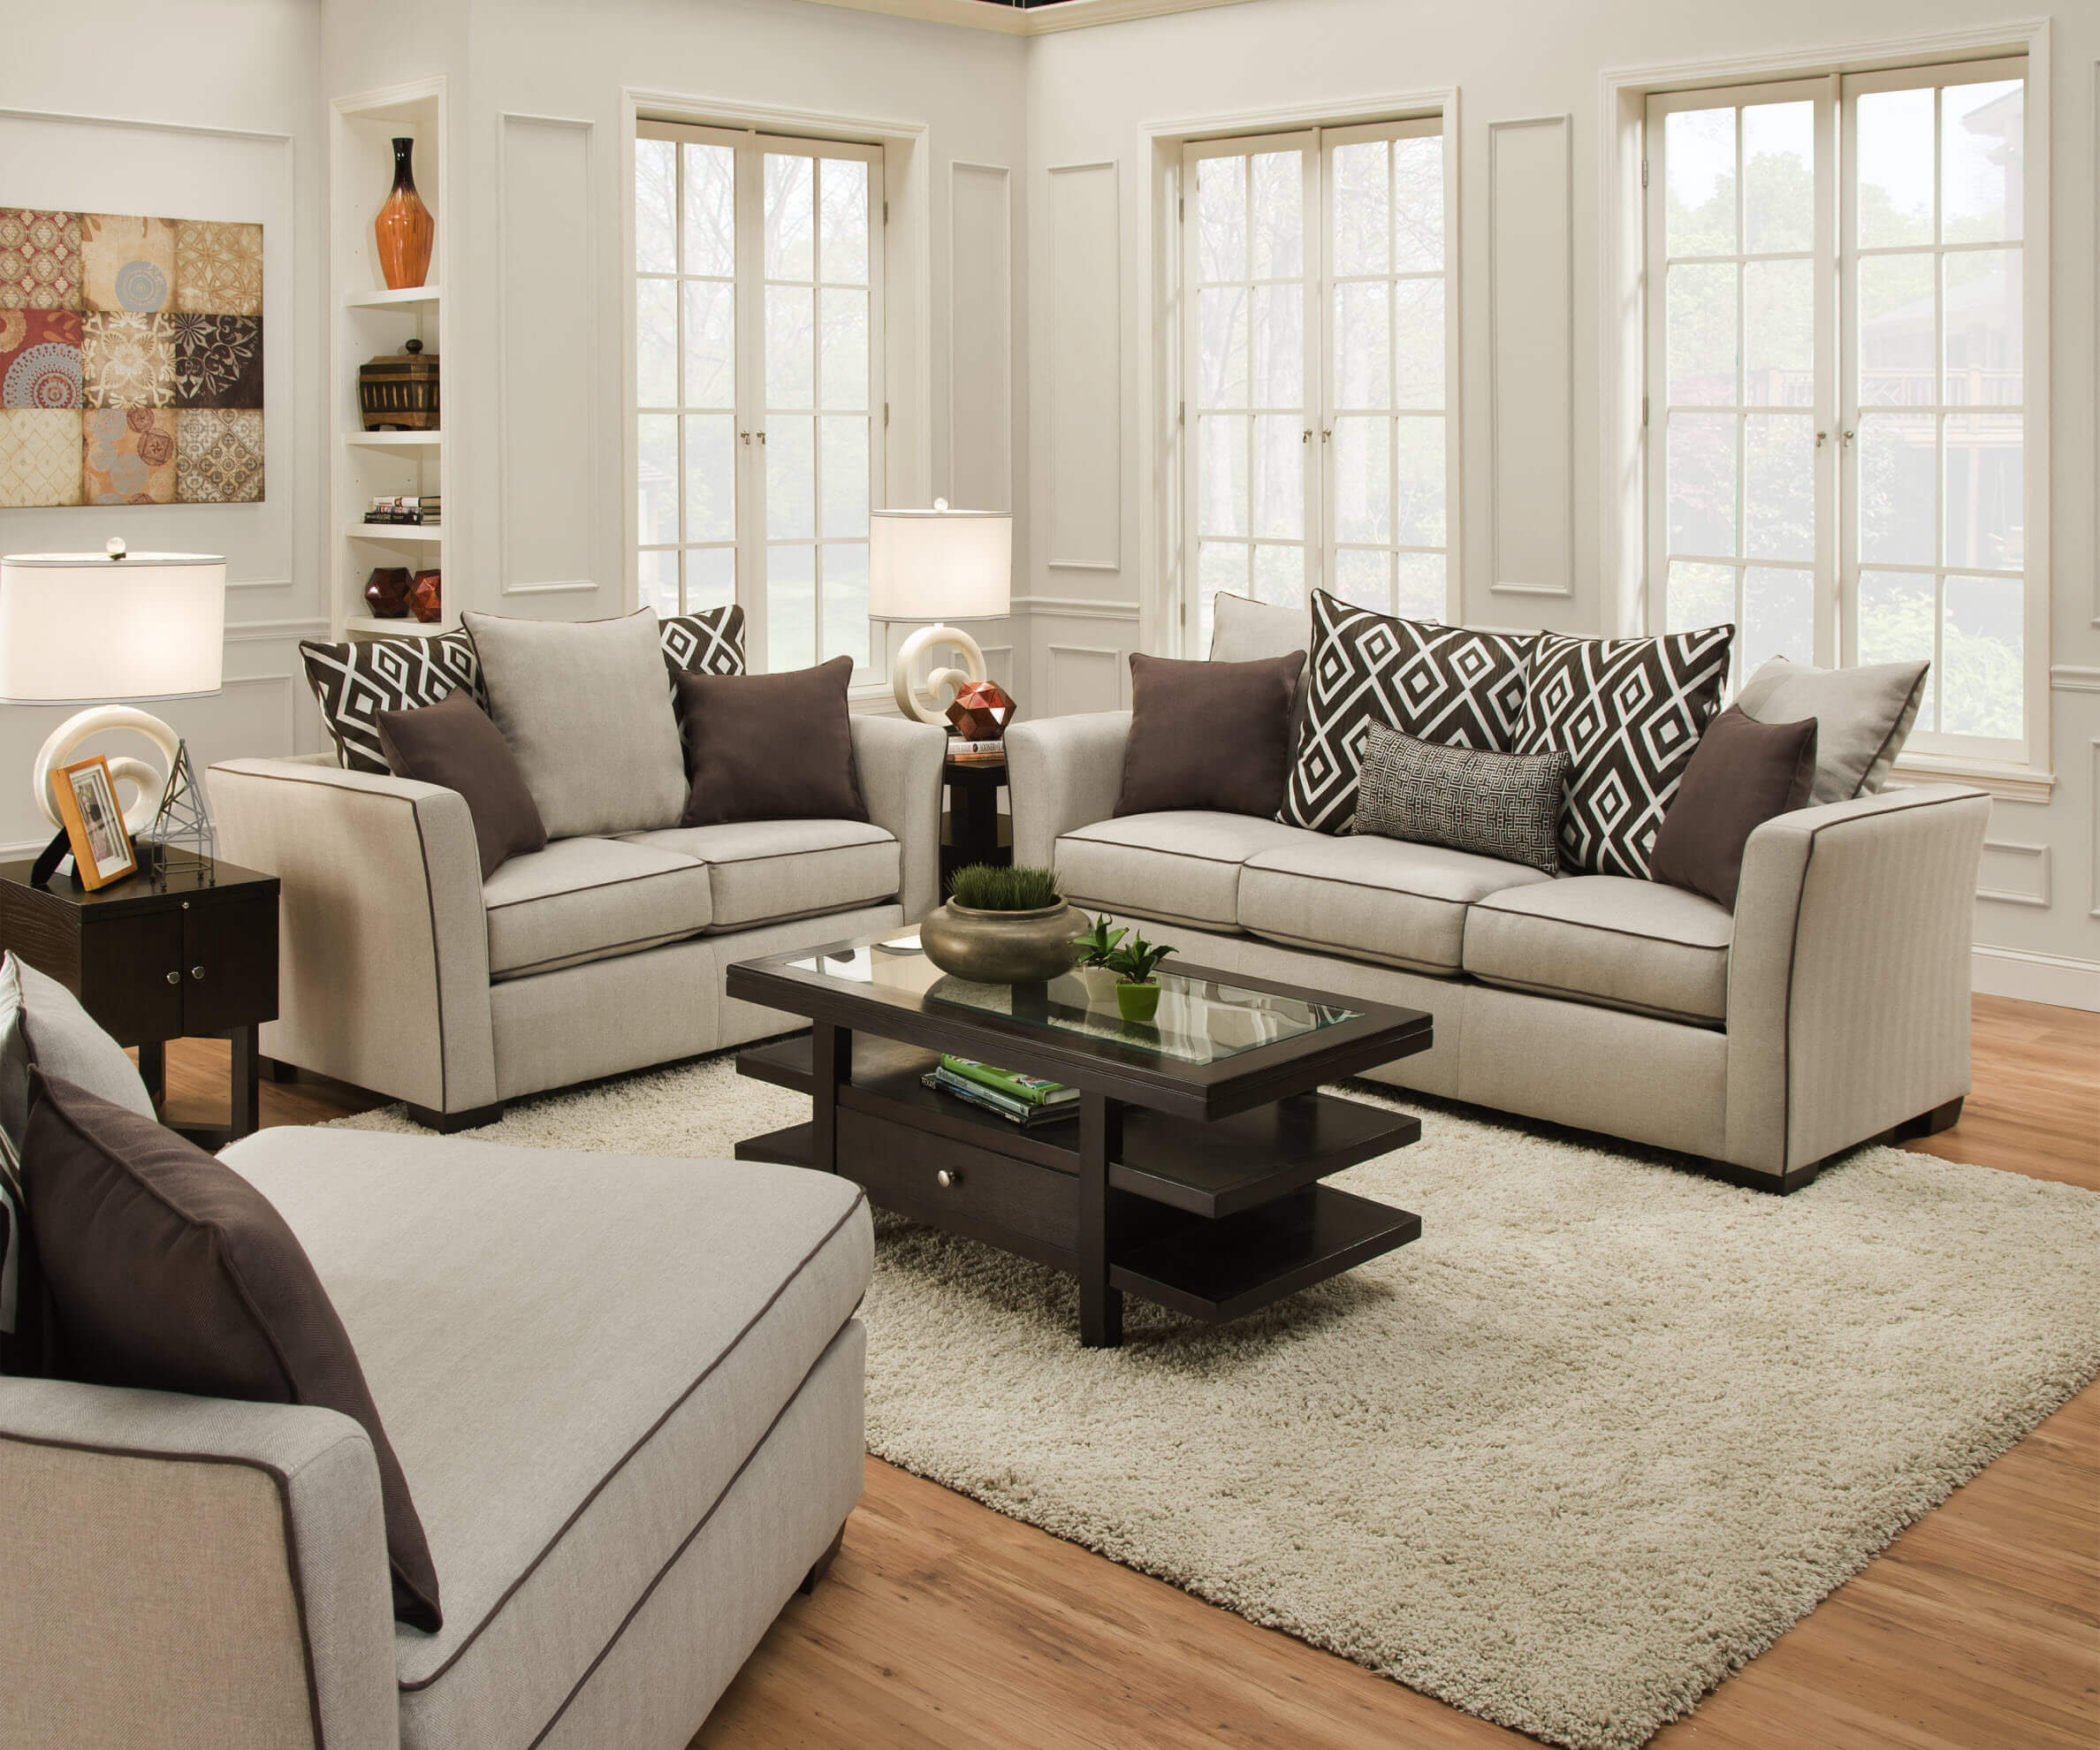 Stewart linen sofa and loveseat by simmons fabric living - Simmons living room furniture sets ...